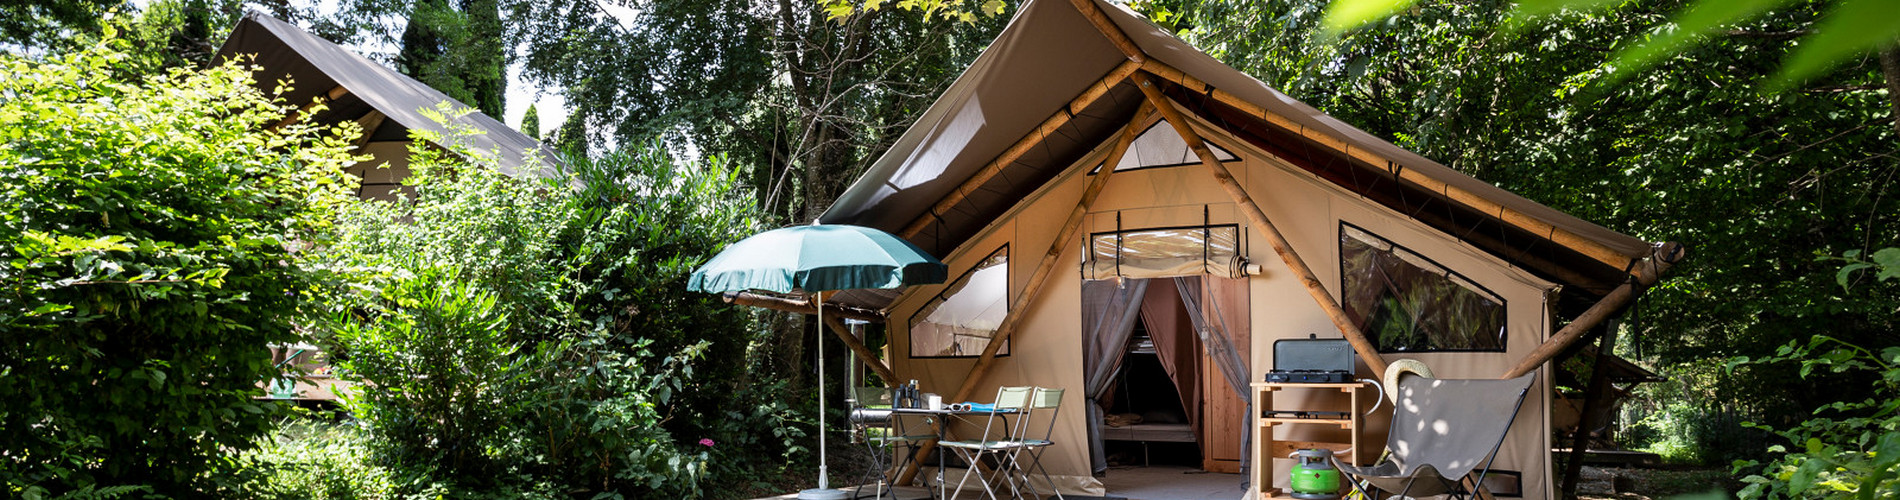 Camping Huttopia Lac d'Aiguebelette ©Manu Reyboz